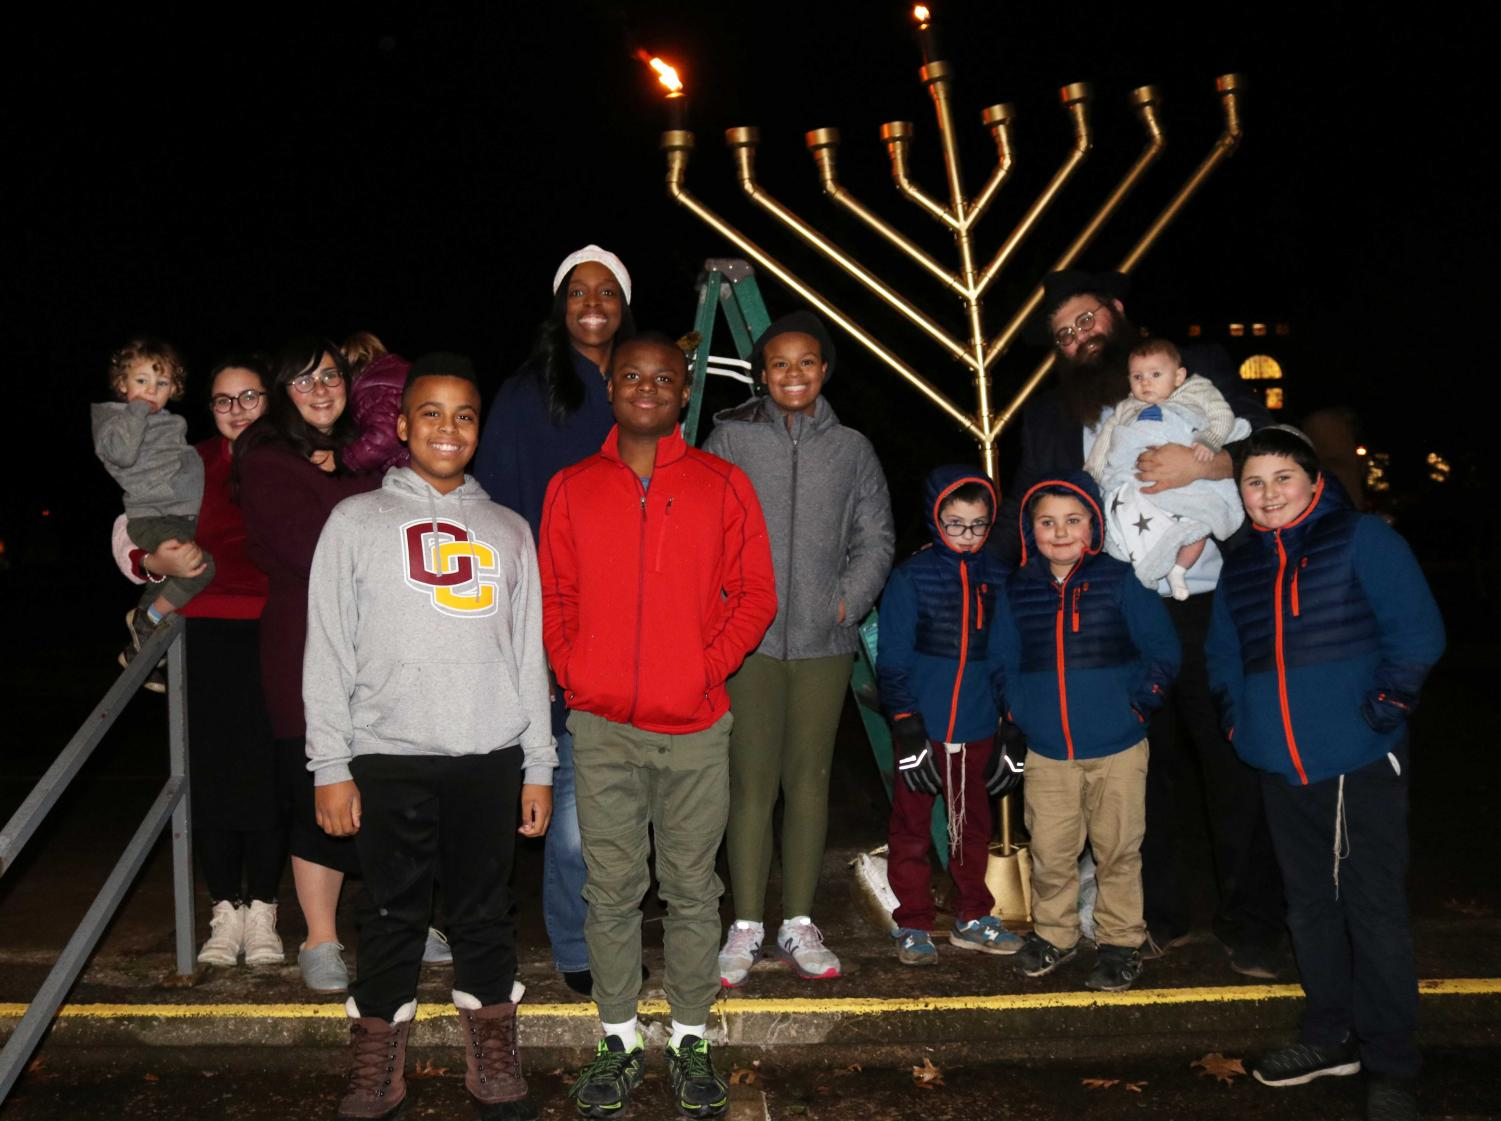 """Students and community members gathered in Wilder Bowl last Sunday night for the Grand Menorah Lighting Ceremony sponsored by Chabad at Oberlin. The event opened with remarks from President Carmen Ambar, followed by an a cappella performance by the Obertones. Rabbi Shlomo Elkan lit the menorah and led the crowd in three Hanukkah prayers. The event provided an opportunity for members of the Jewish community and others to celebrate the first night of Hanukkah.  """"As an Oberlin student, I'm often really busy with my classes and other commitments and I don't make practicing religion a priority,"""" College senior Juliet Flam-Ross said, """"but it was a really amazing feeling to be walking into the library to work on a paper and run into a Jewish practice that made me feel like I was home.""""  Attendees were encouraged to bring gently used books for Chabad's People of the Book project, an effort that donates books to people incarcerated in Lorain County."""